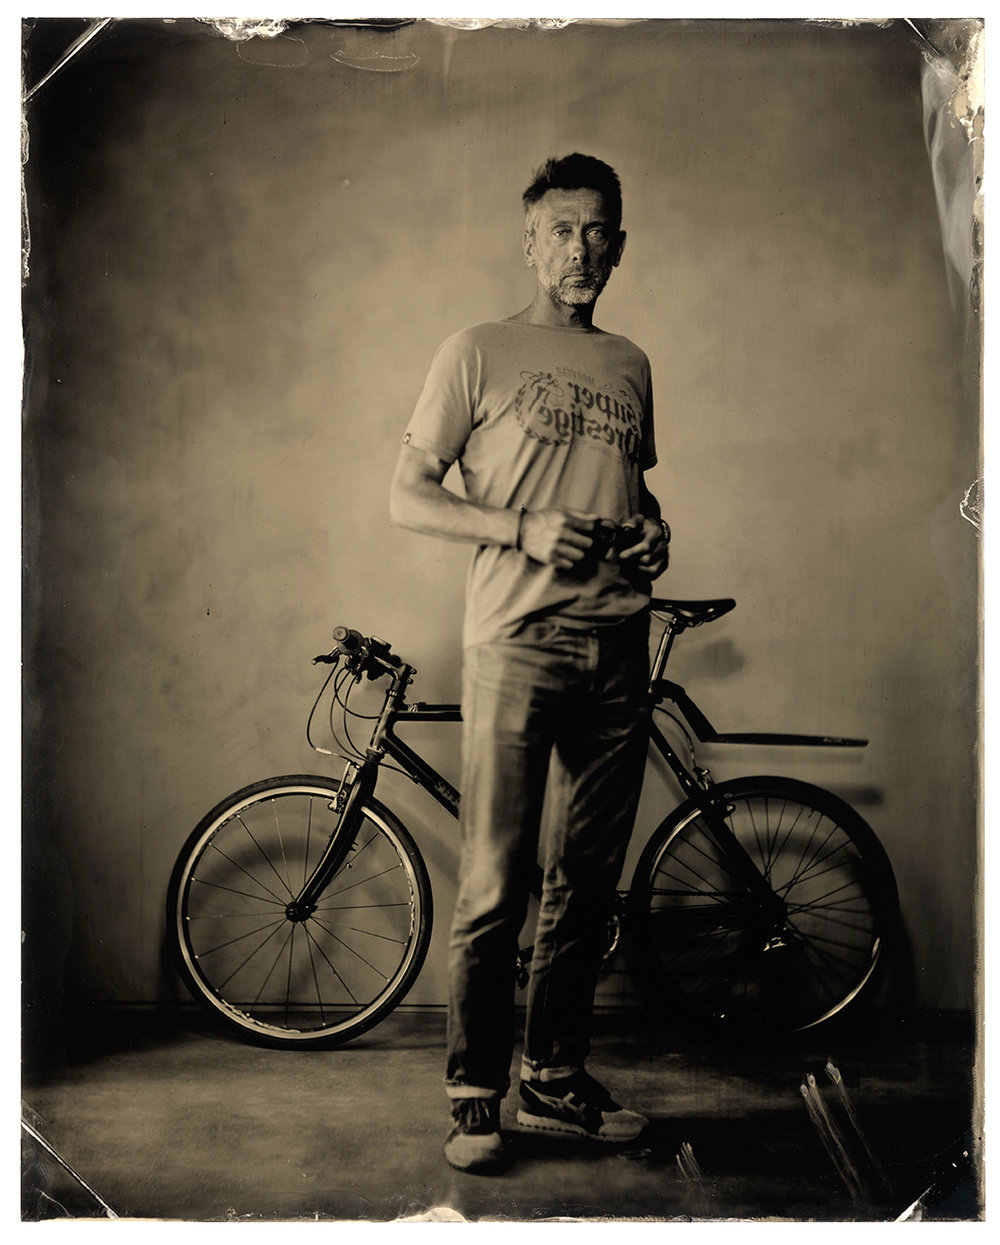 Tintype portrait by Tiff Hunter